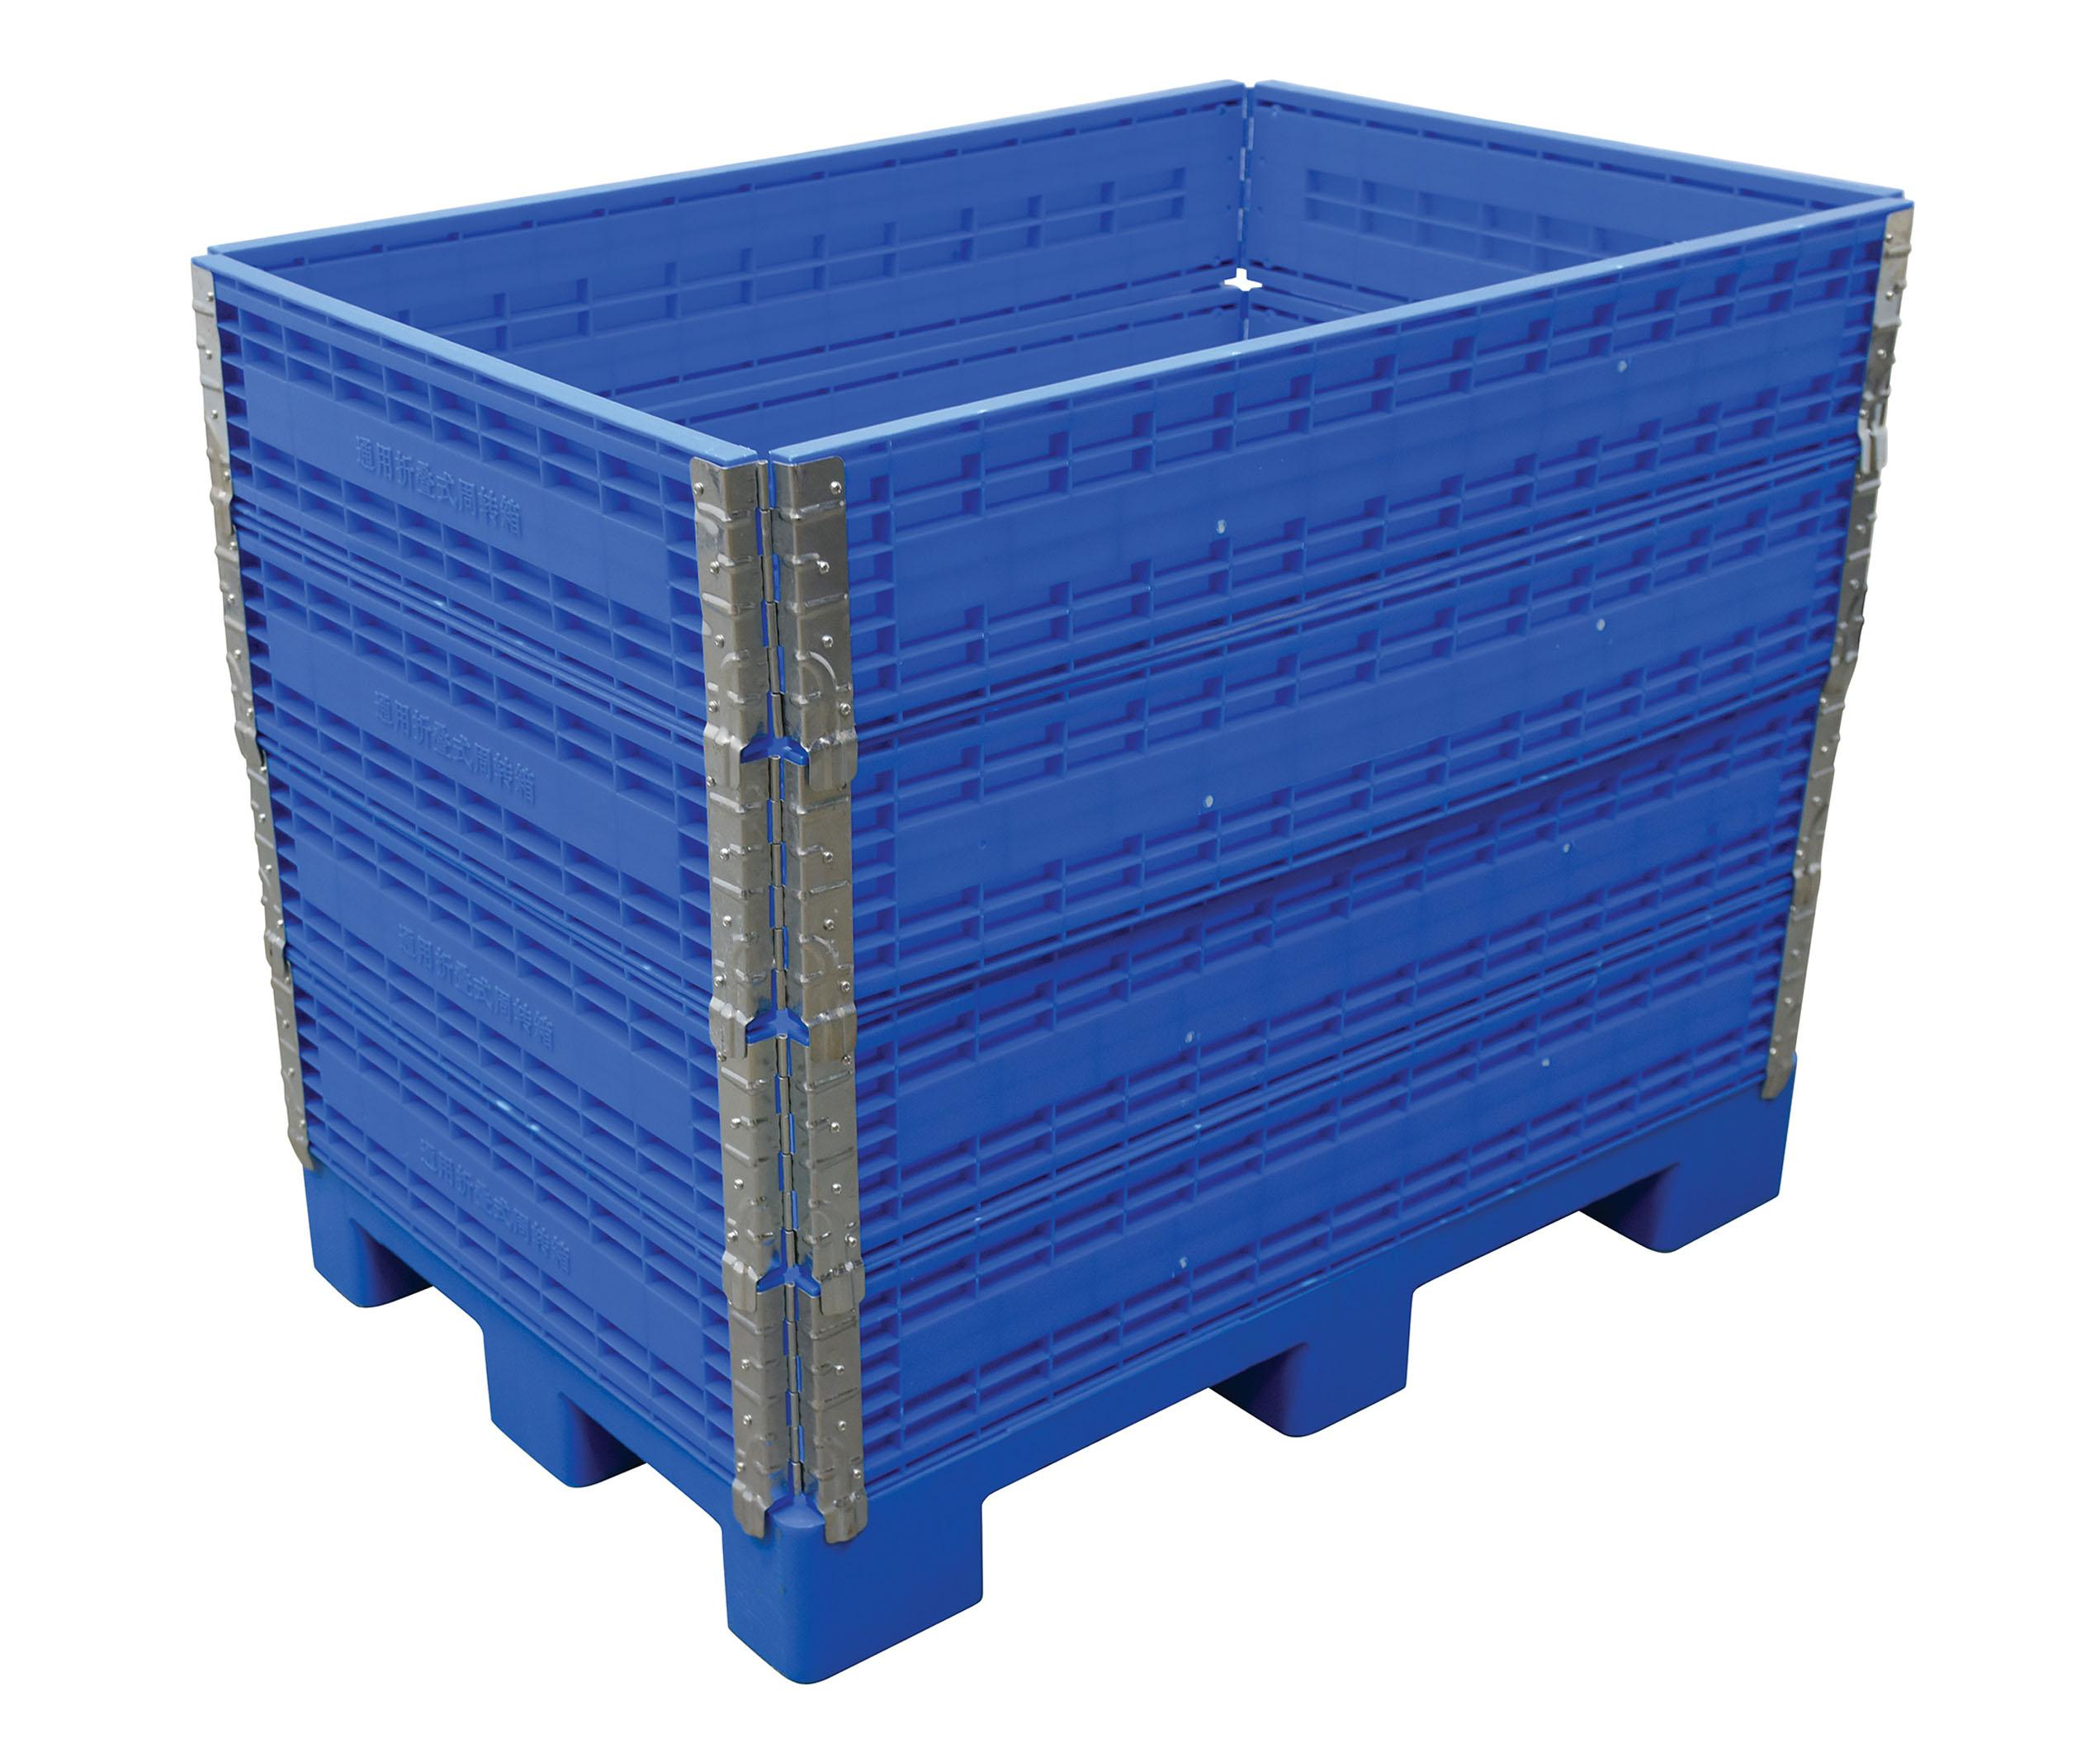 Vestil MULTI-C Multi-Height Containers